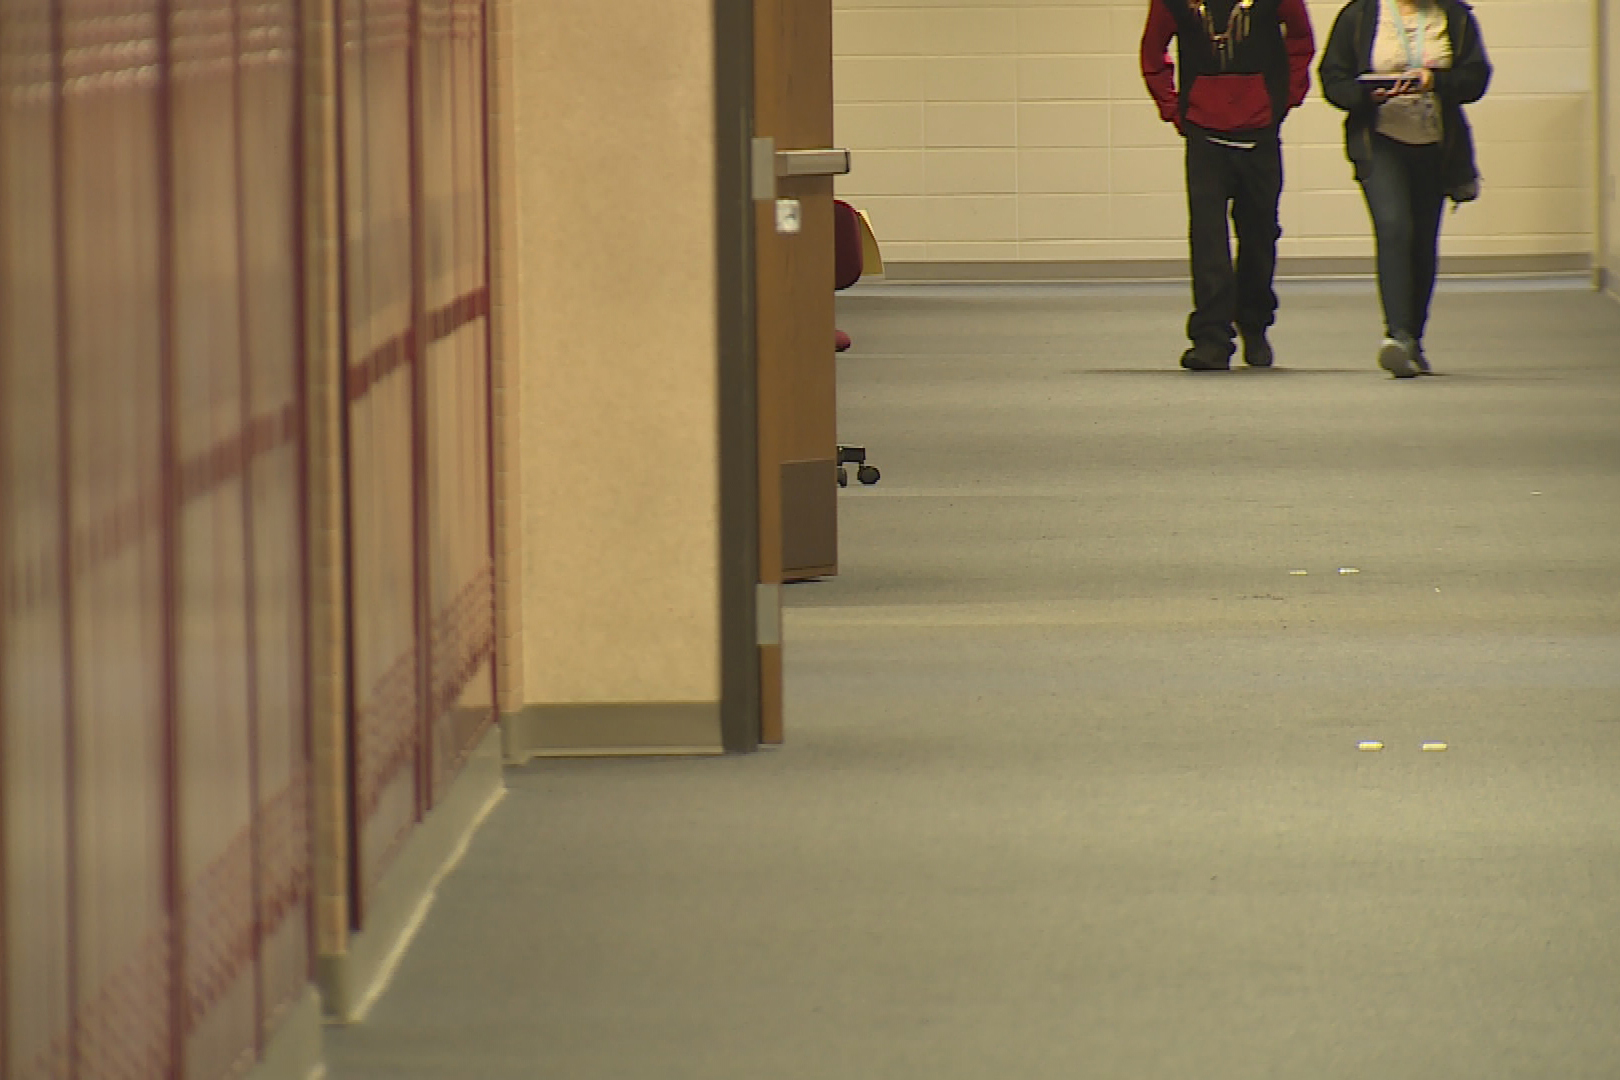 Once Merrillville students reach nine unexcused absences, their parents get a ticket instructing them to show up to truancy court (Steve Burns, WFIU/WTIU News).